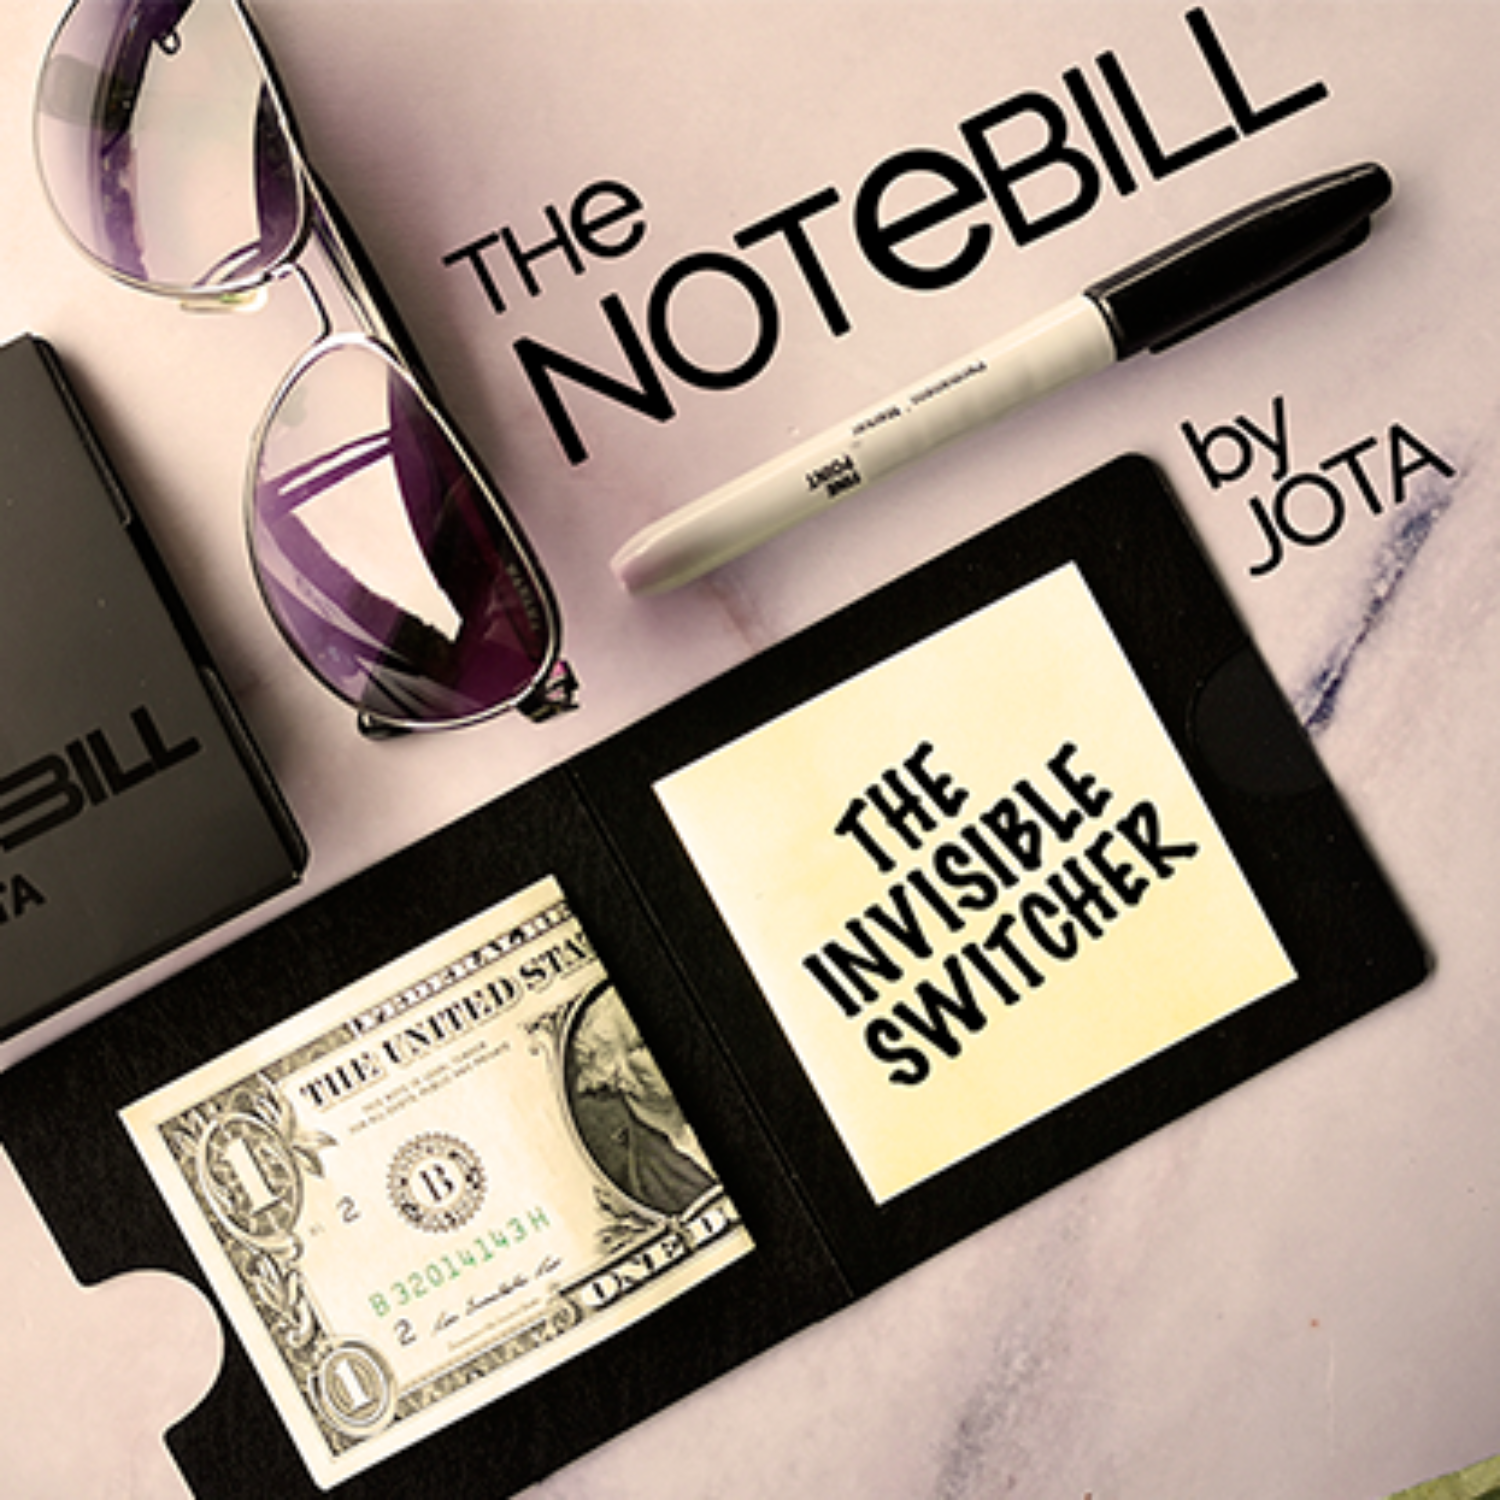 더 노트빌(The NOTEBILL by JOTA)